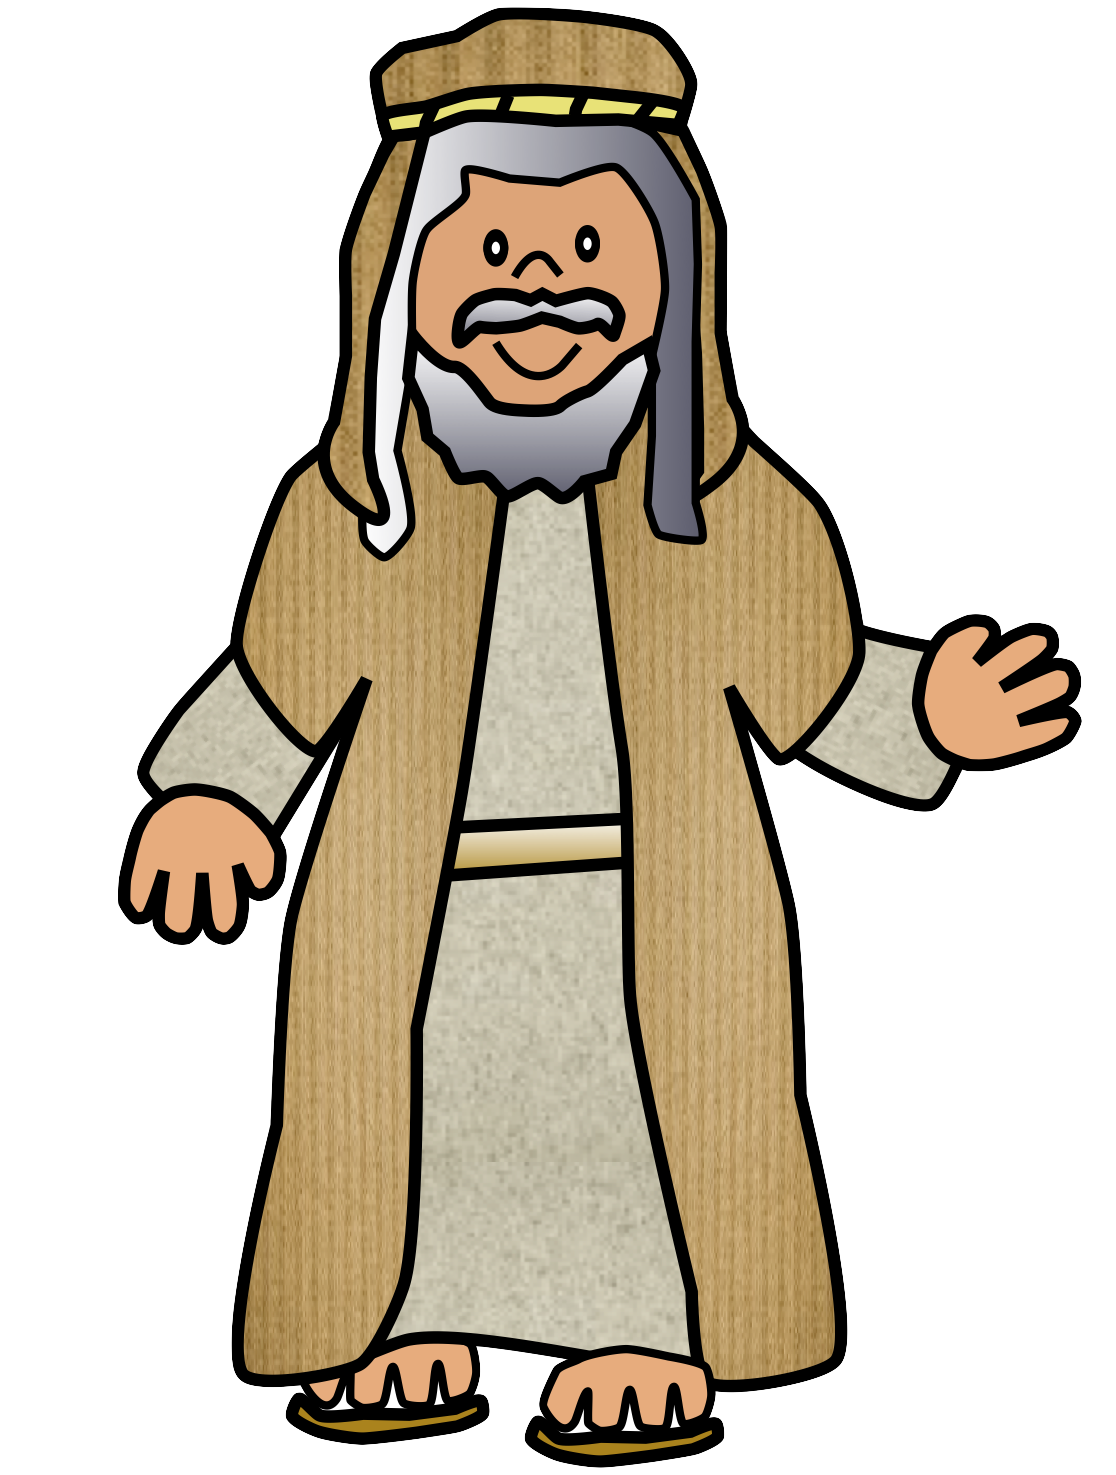 Abraham and isaac at. Moses clipart abram